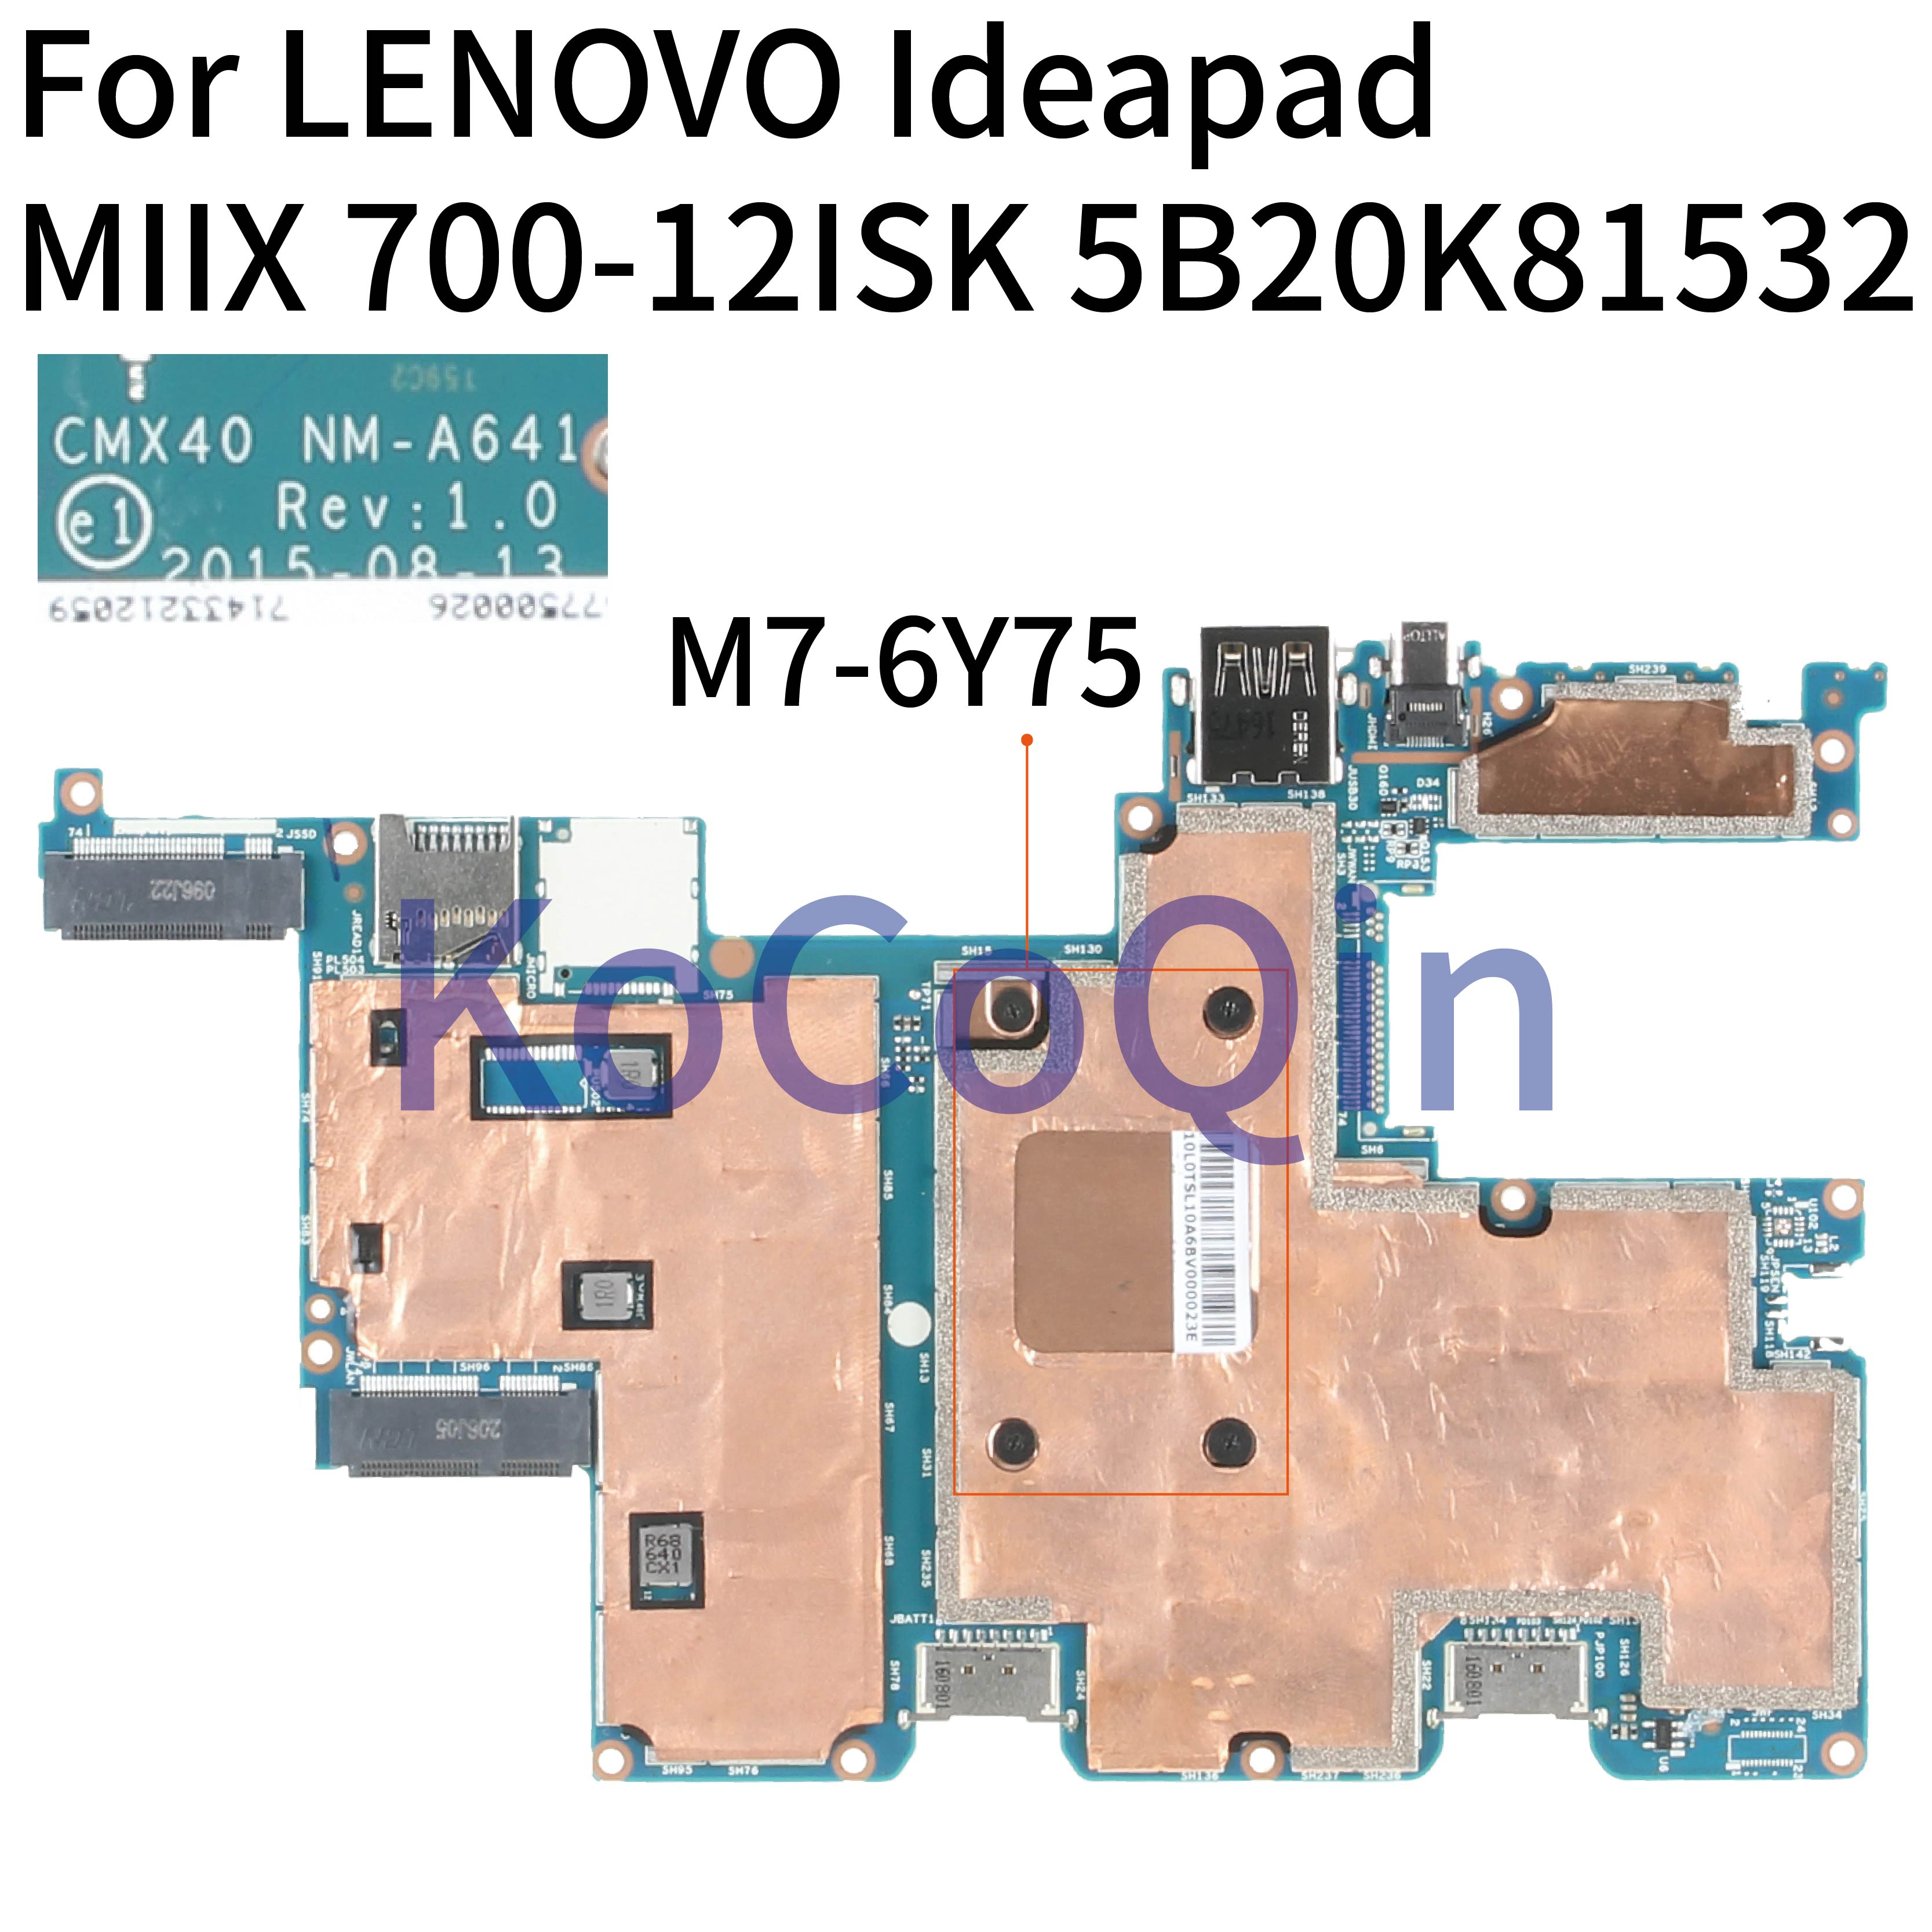 KoCoQin Laptop Motherboard For LENOVO IdeaPad MIIX 700-12ISK M7-6Y75 8G Mainboard 5B20K66835 NM-A641